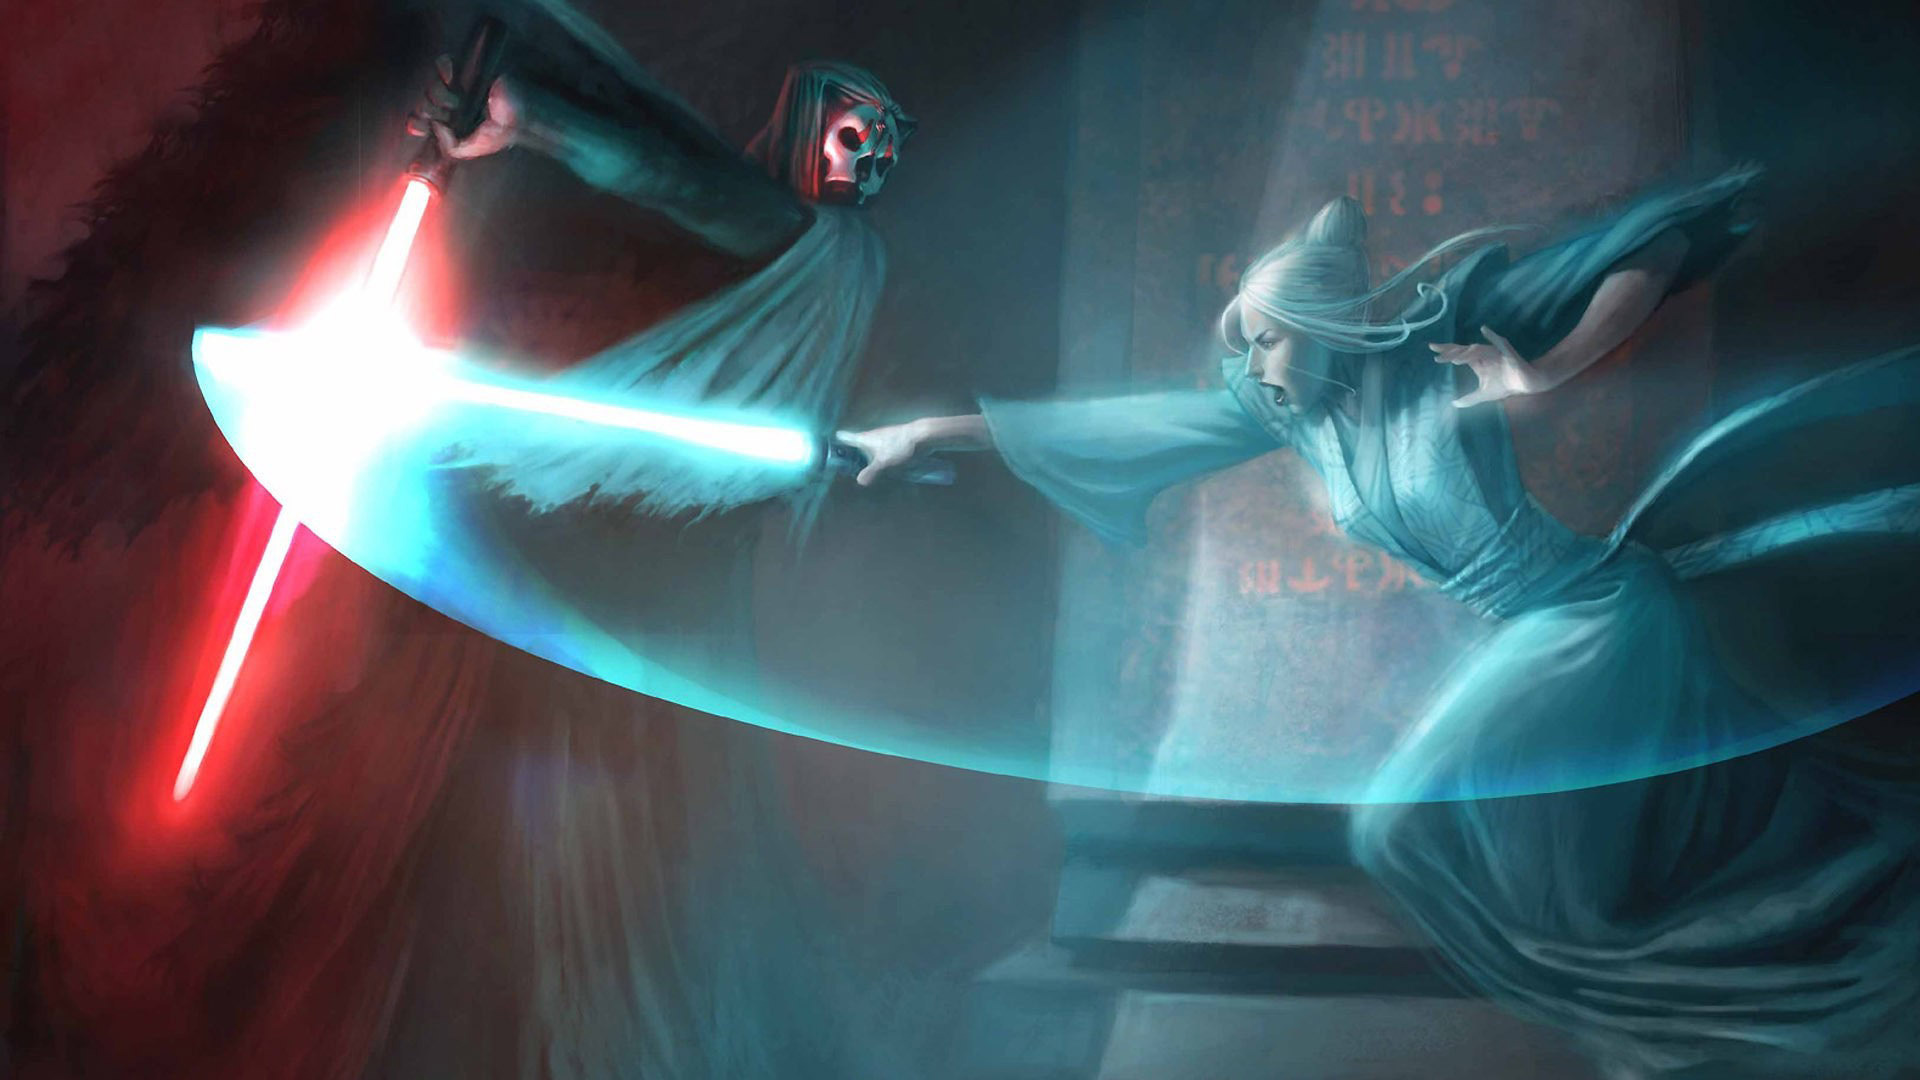 Free Download Star Wars Knights Of The Old Republic Wallpaper